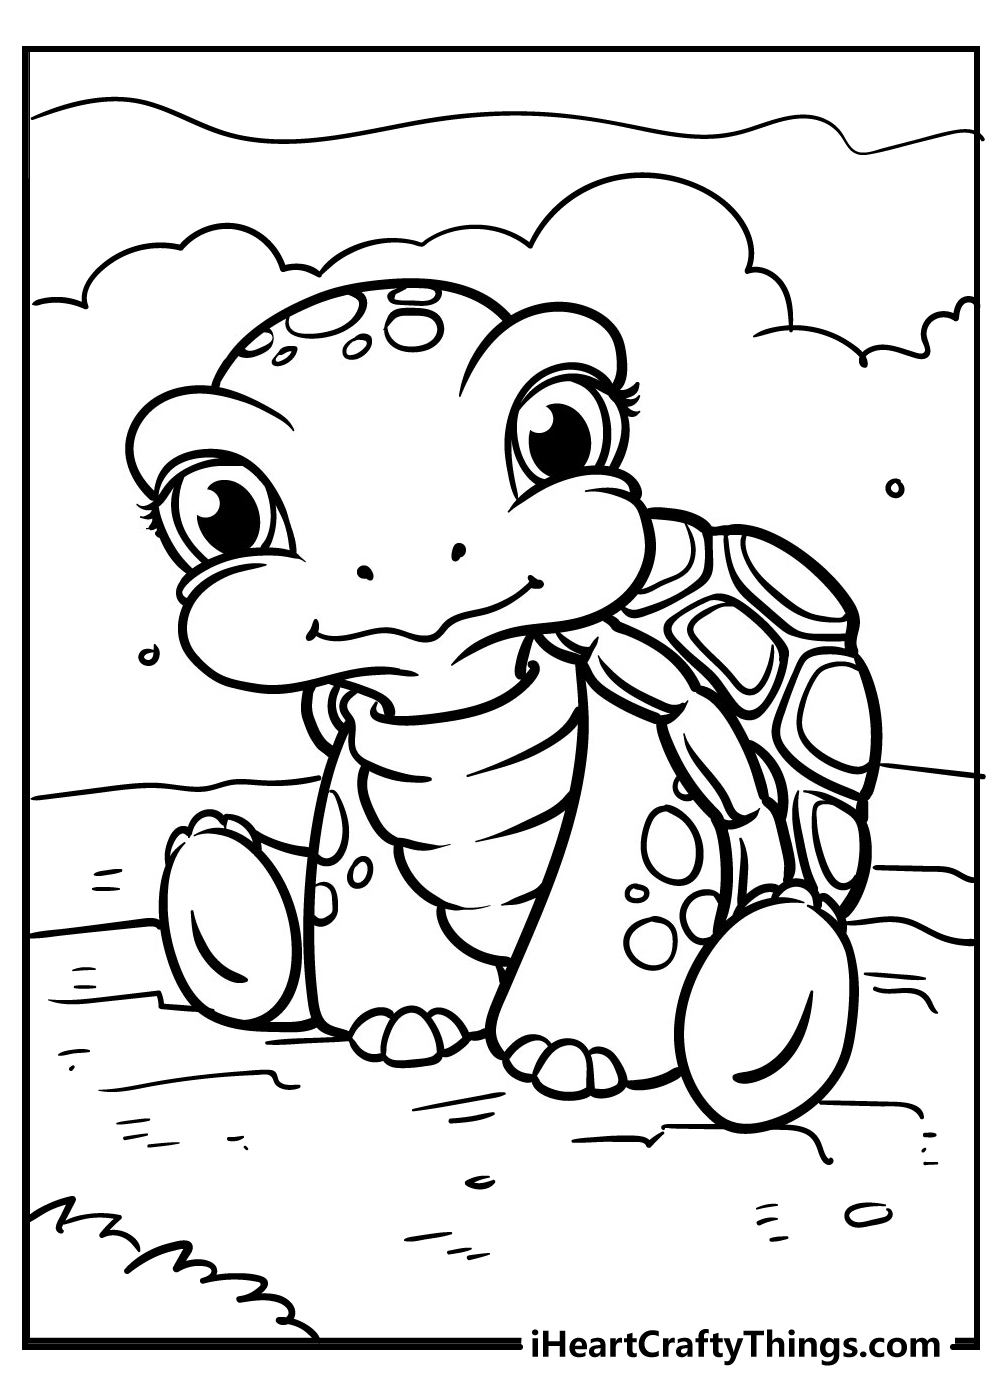 reptiles coloring turtle coloring pages free printable